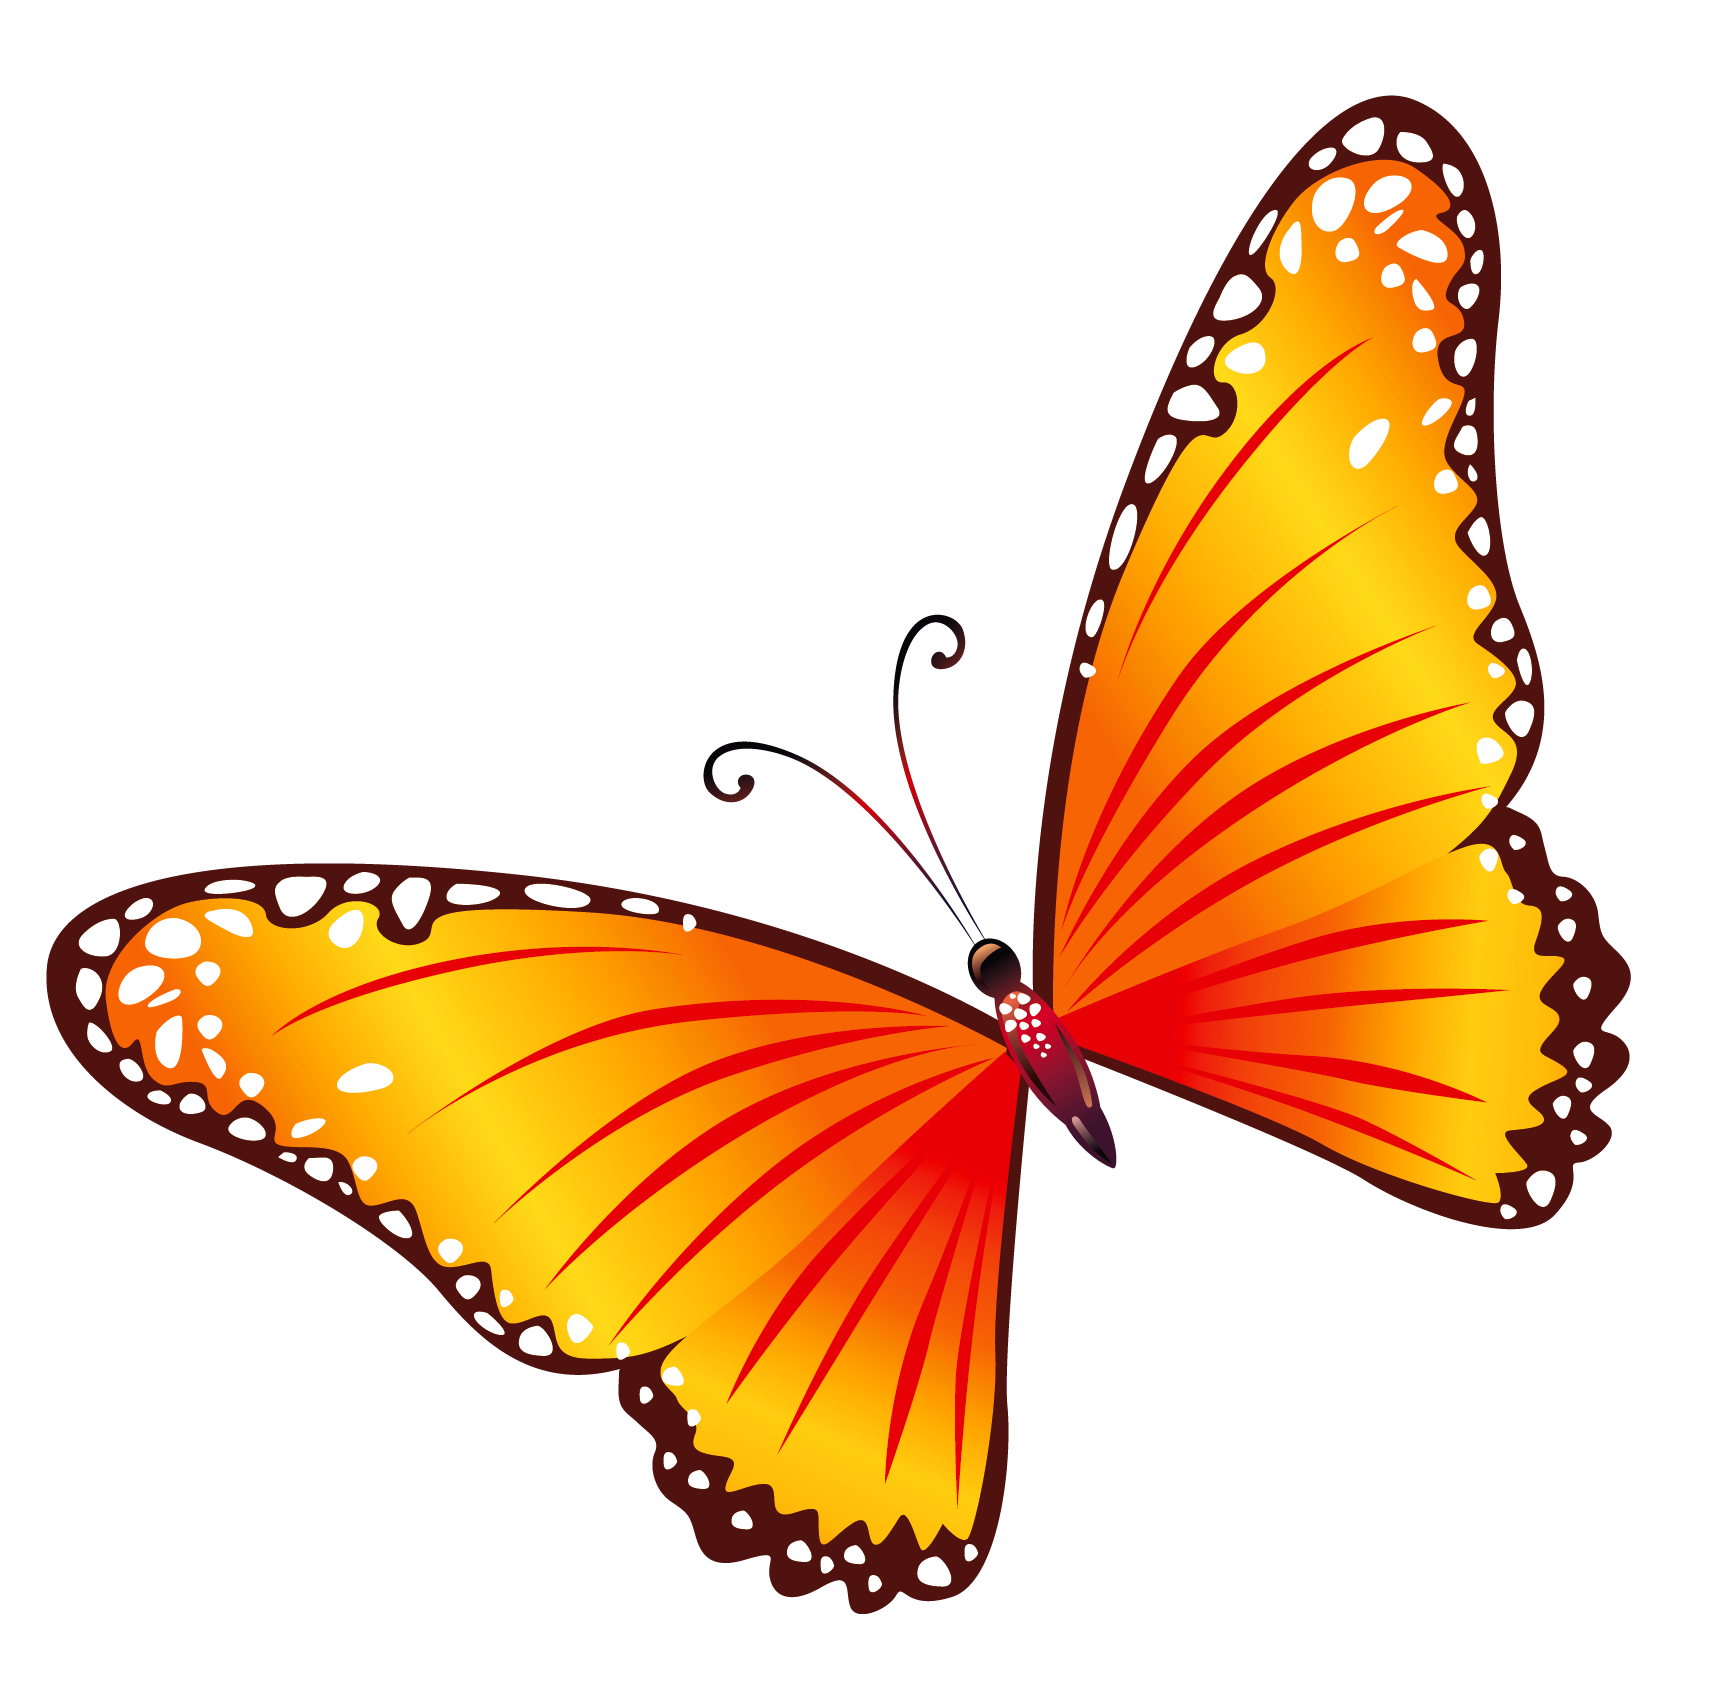 Butterfly clip art transparent background. Orange png clipart gallery